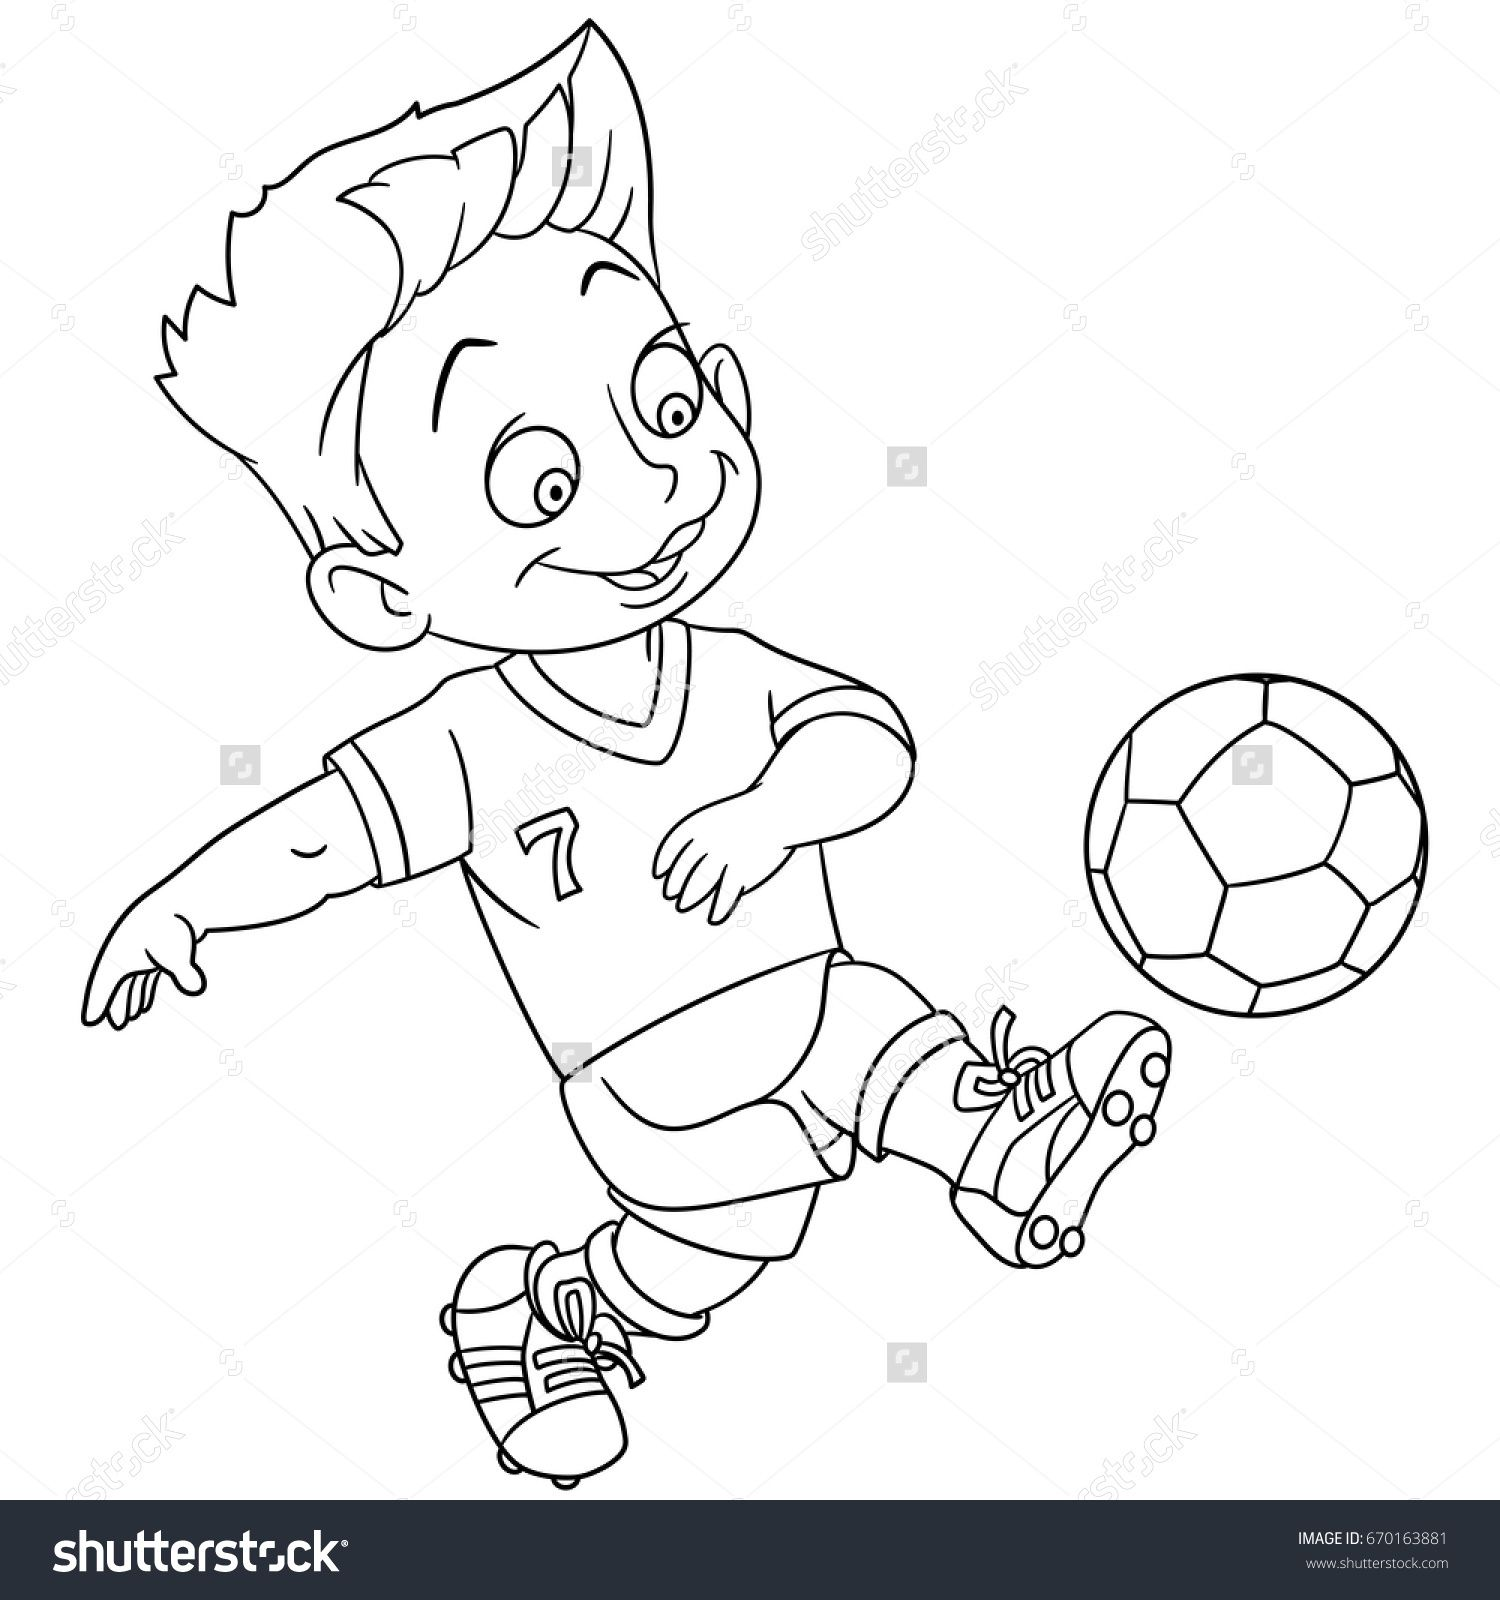 coloring page cartoon boy playing football vector illustration